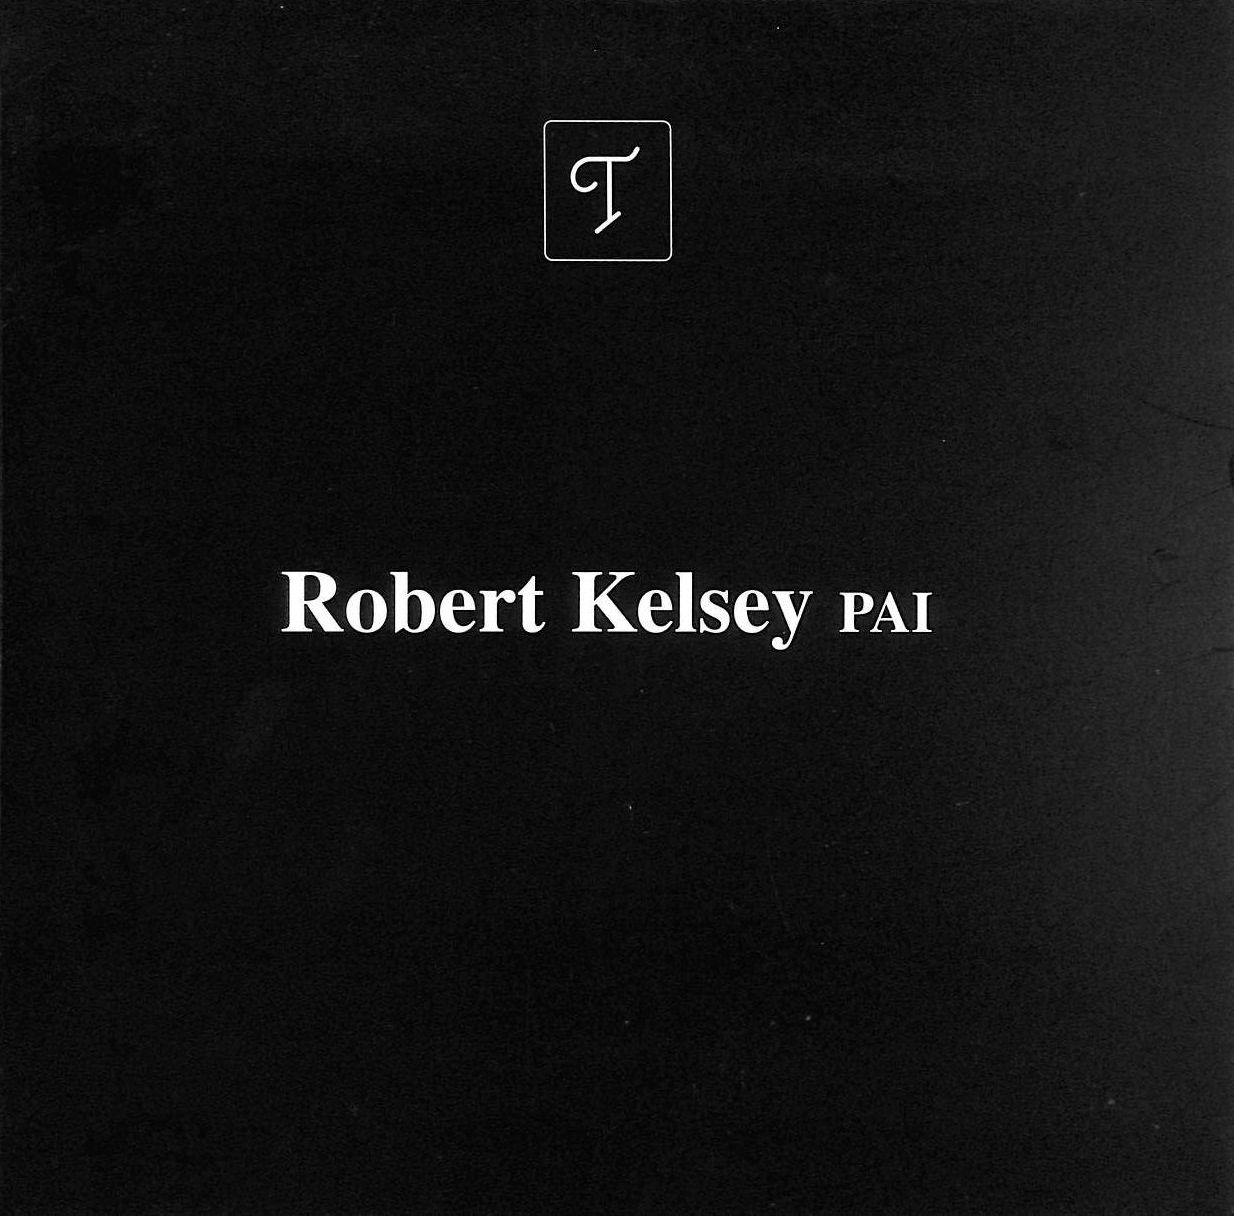 Image for Robert Kelsey PAI Exhibition